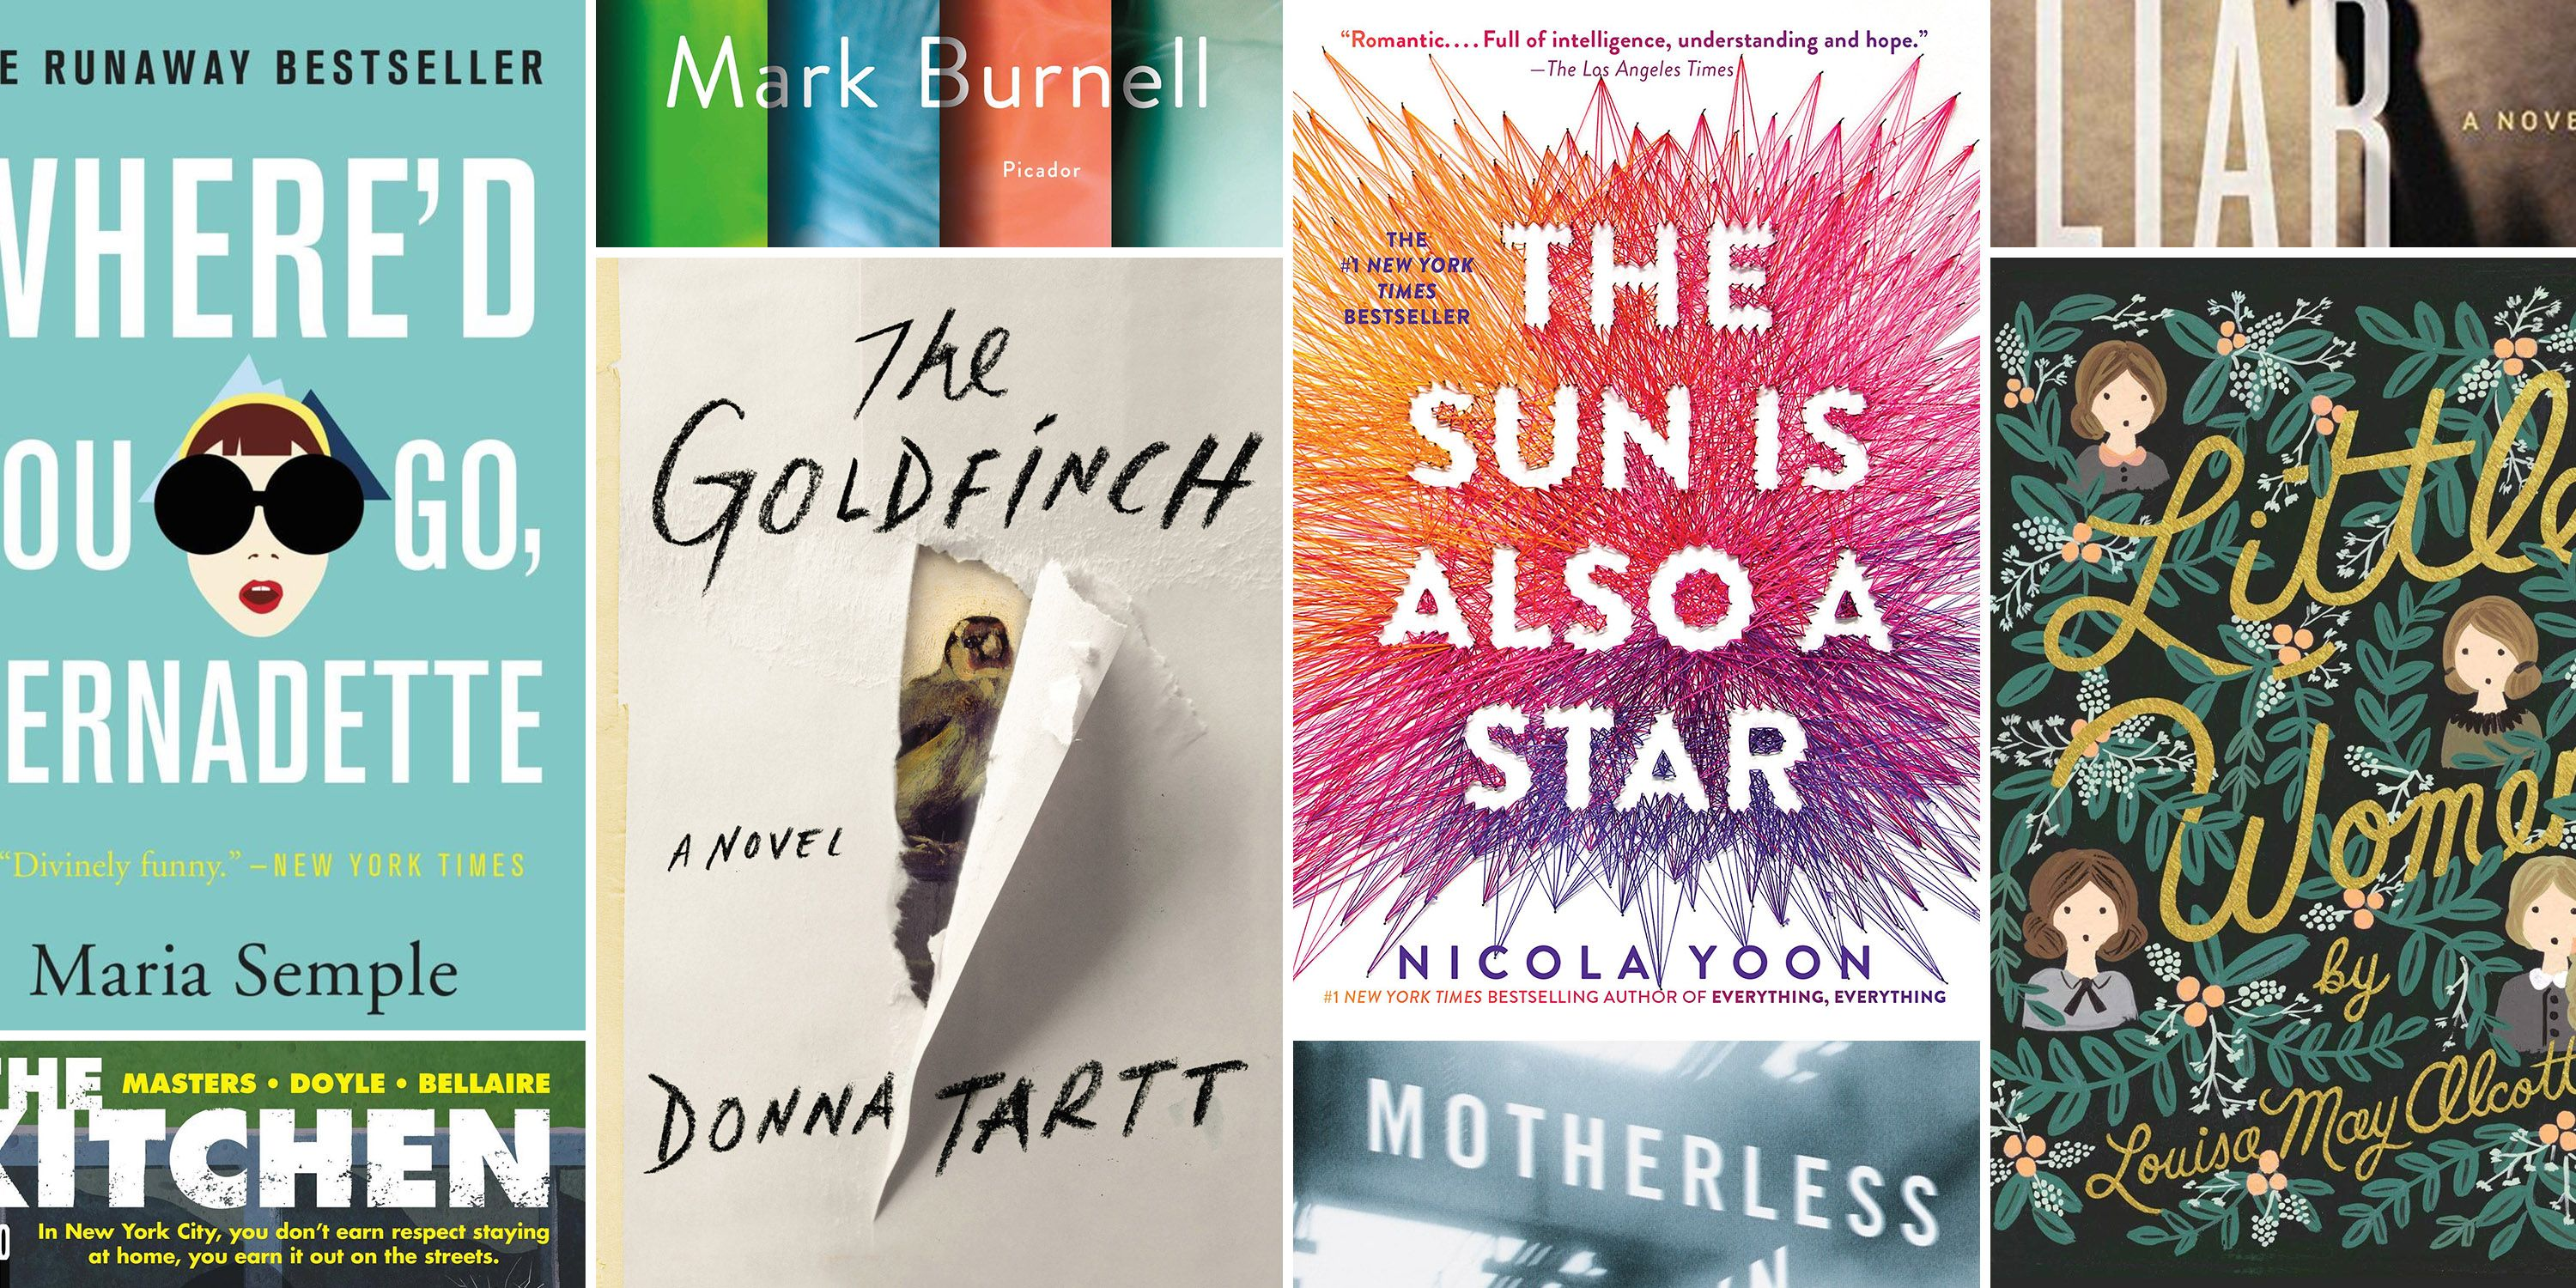 13 Books Becoming Movies You'll Want to Read and Watch This Year